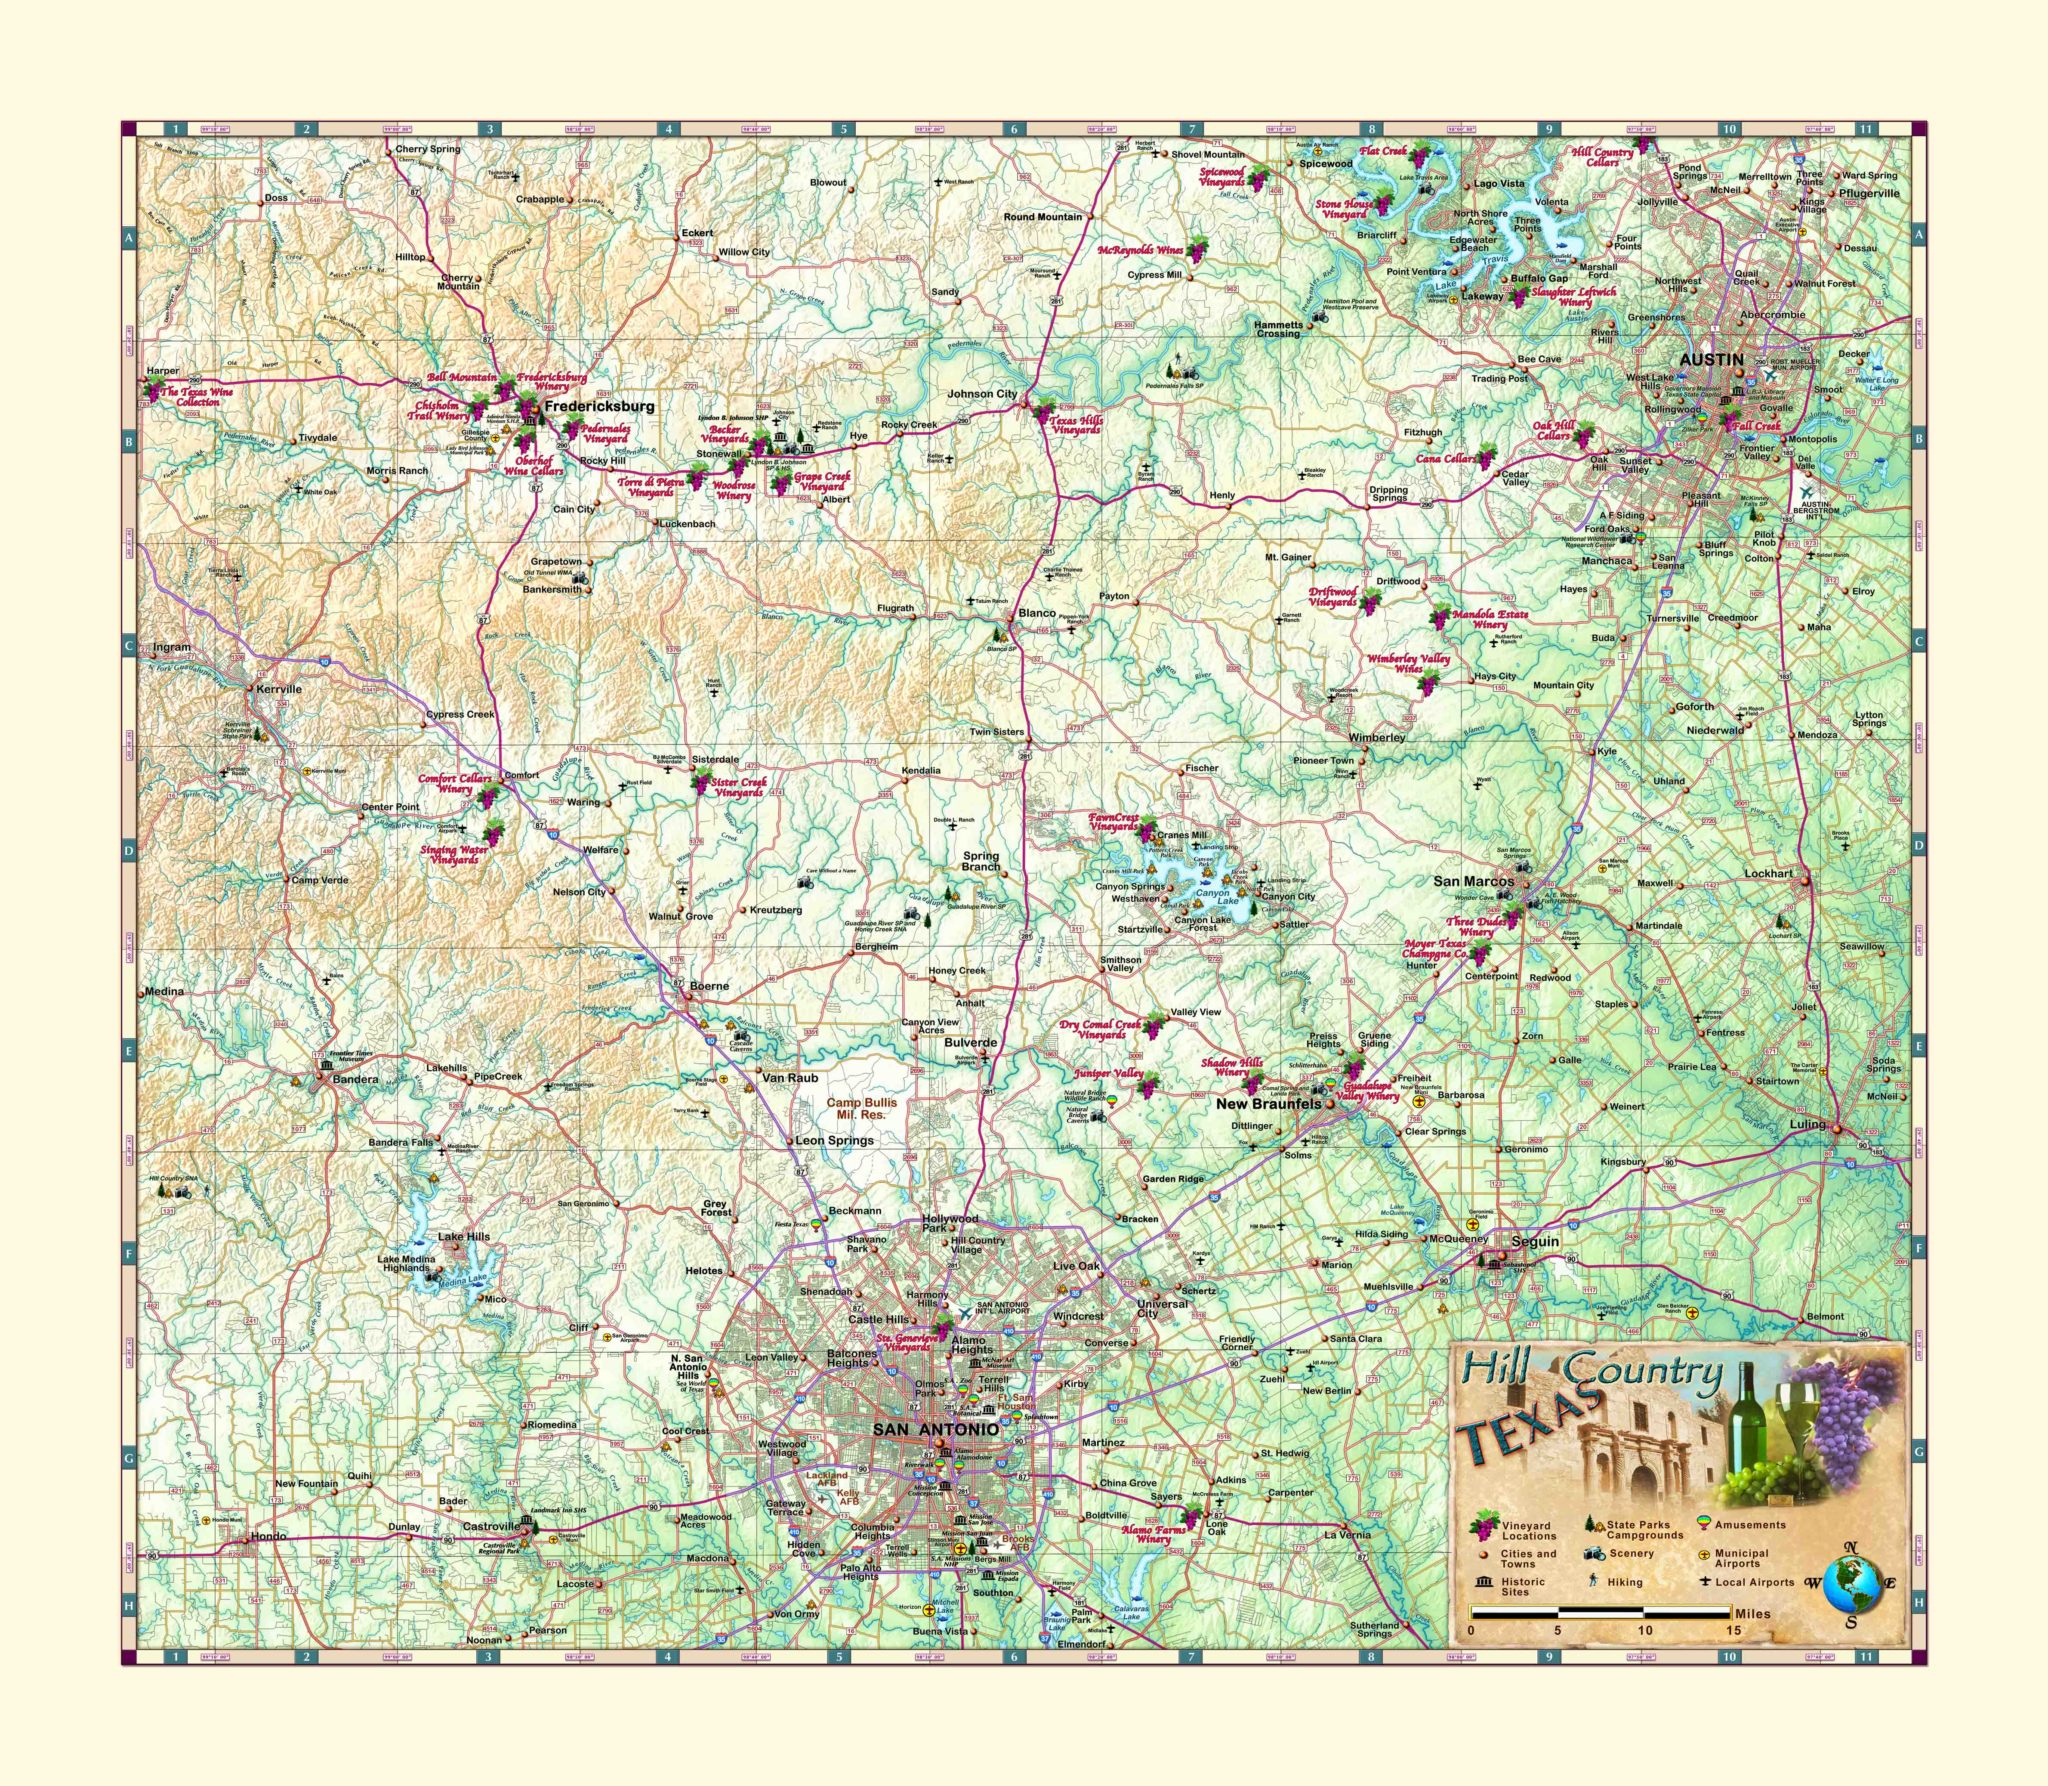 Texas Hill Country & Wine Wall Map - The Map Shop - Texas Wine Country Map